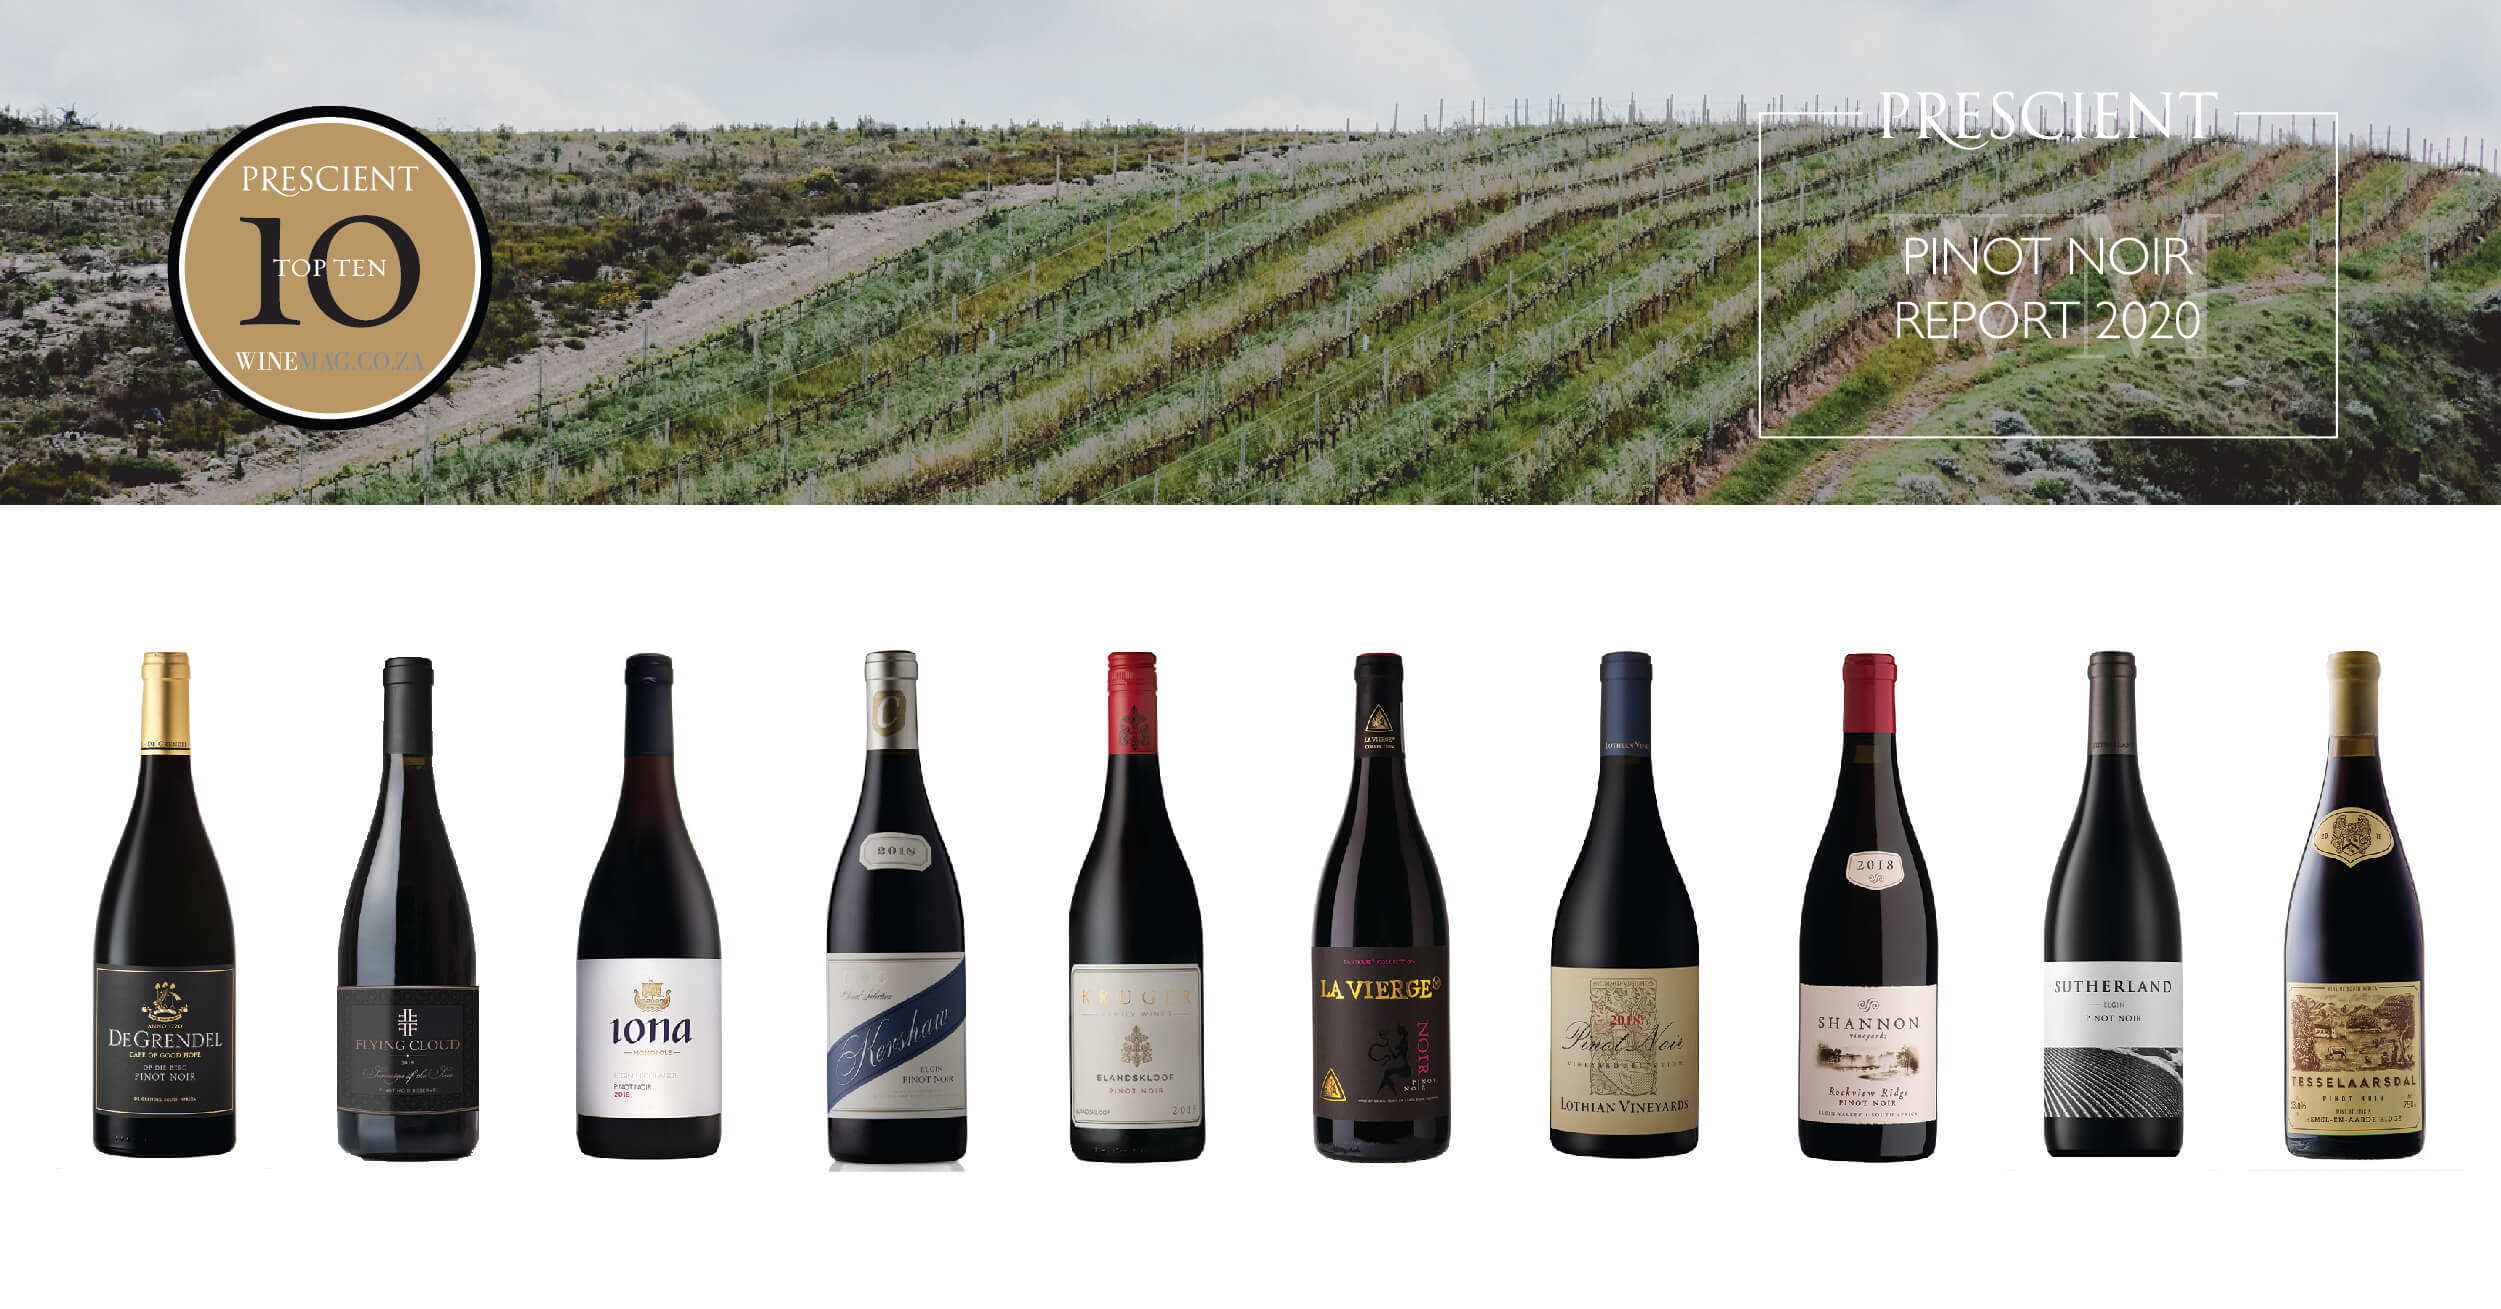 10 Best Wines In The 2020 Prescient Pinot Noir Report photo